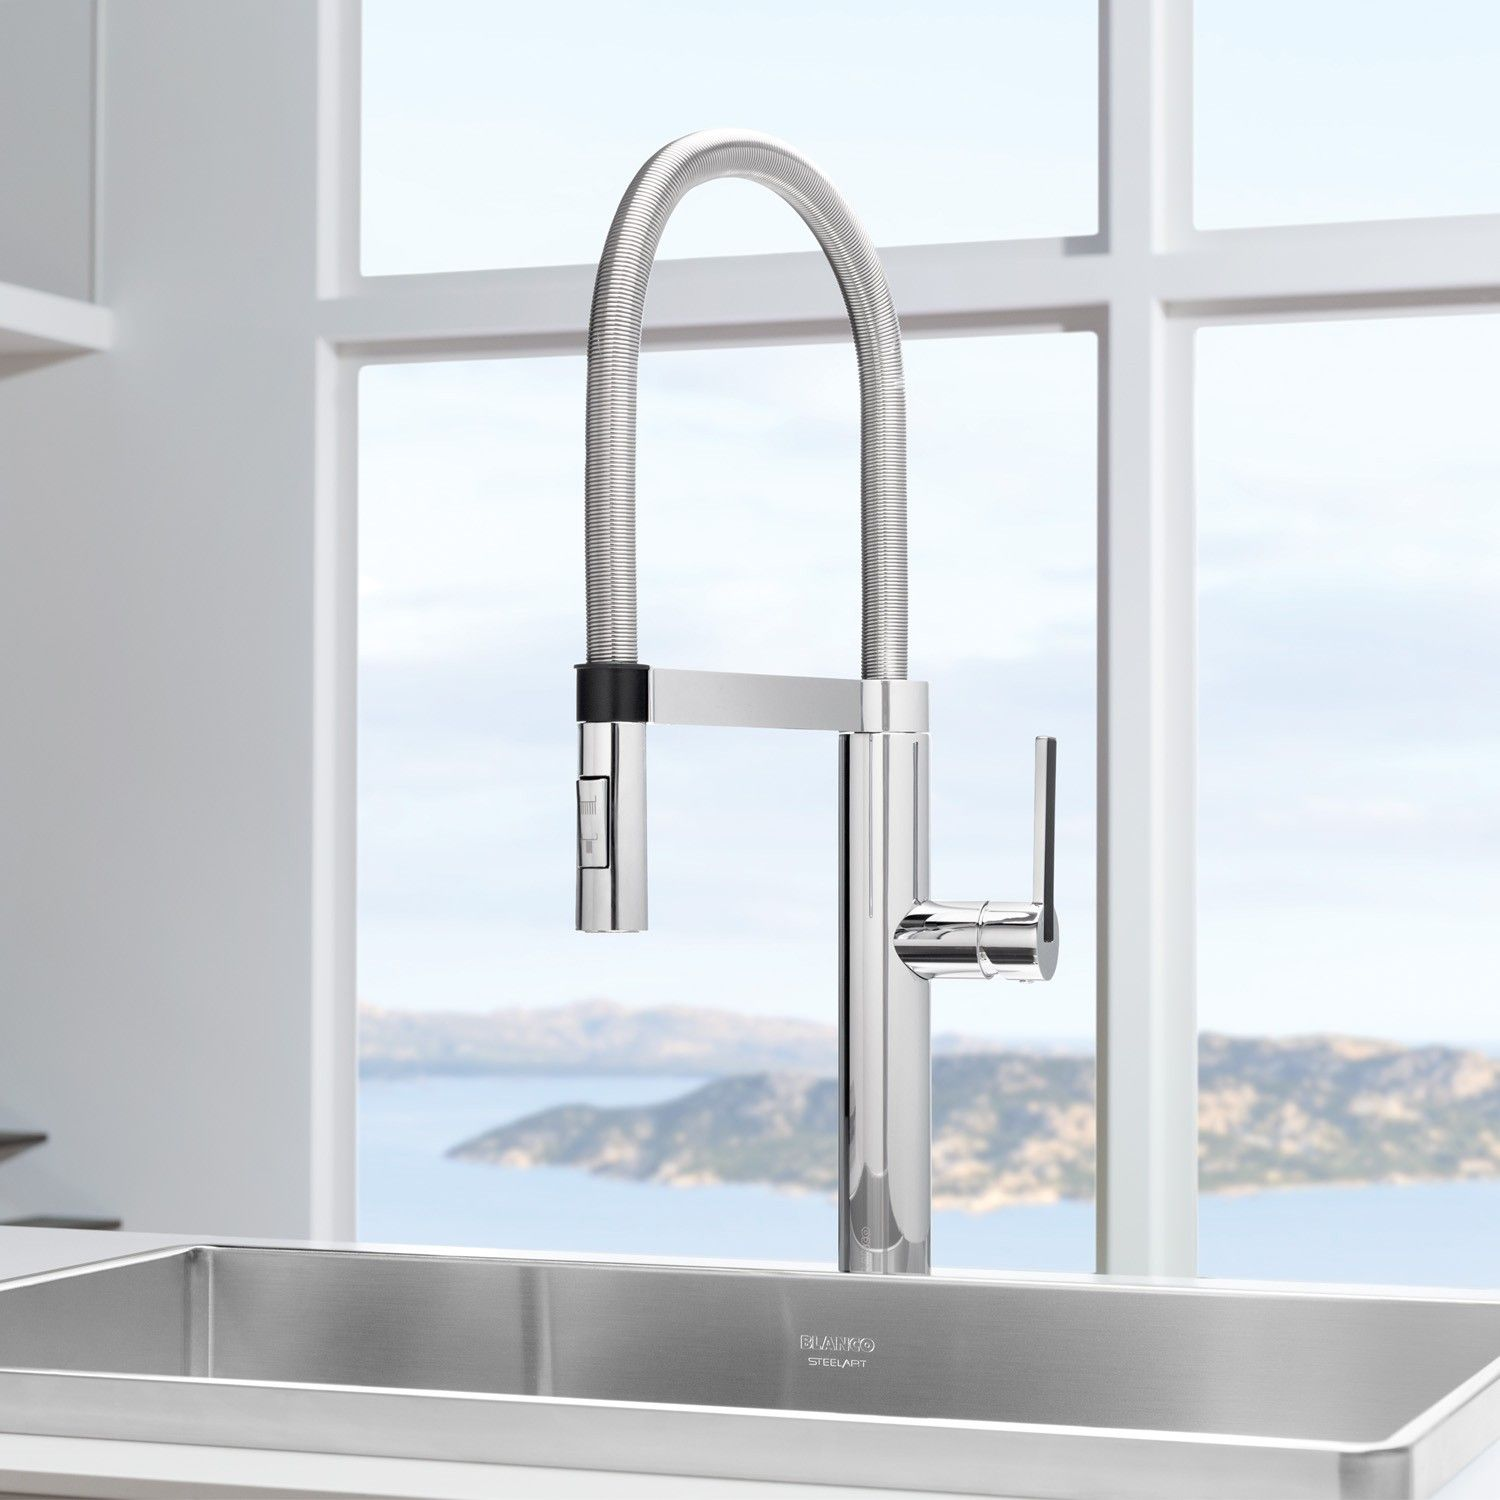 rohl kitchen faucet Culina Semi Pro Kitchen Faucet by Blanco YLiving